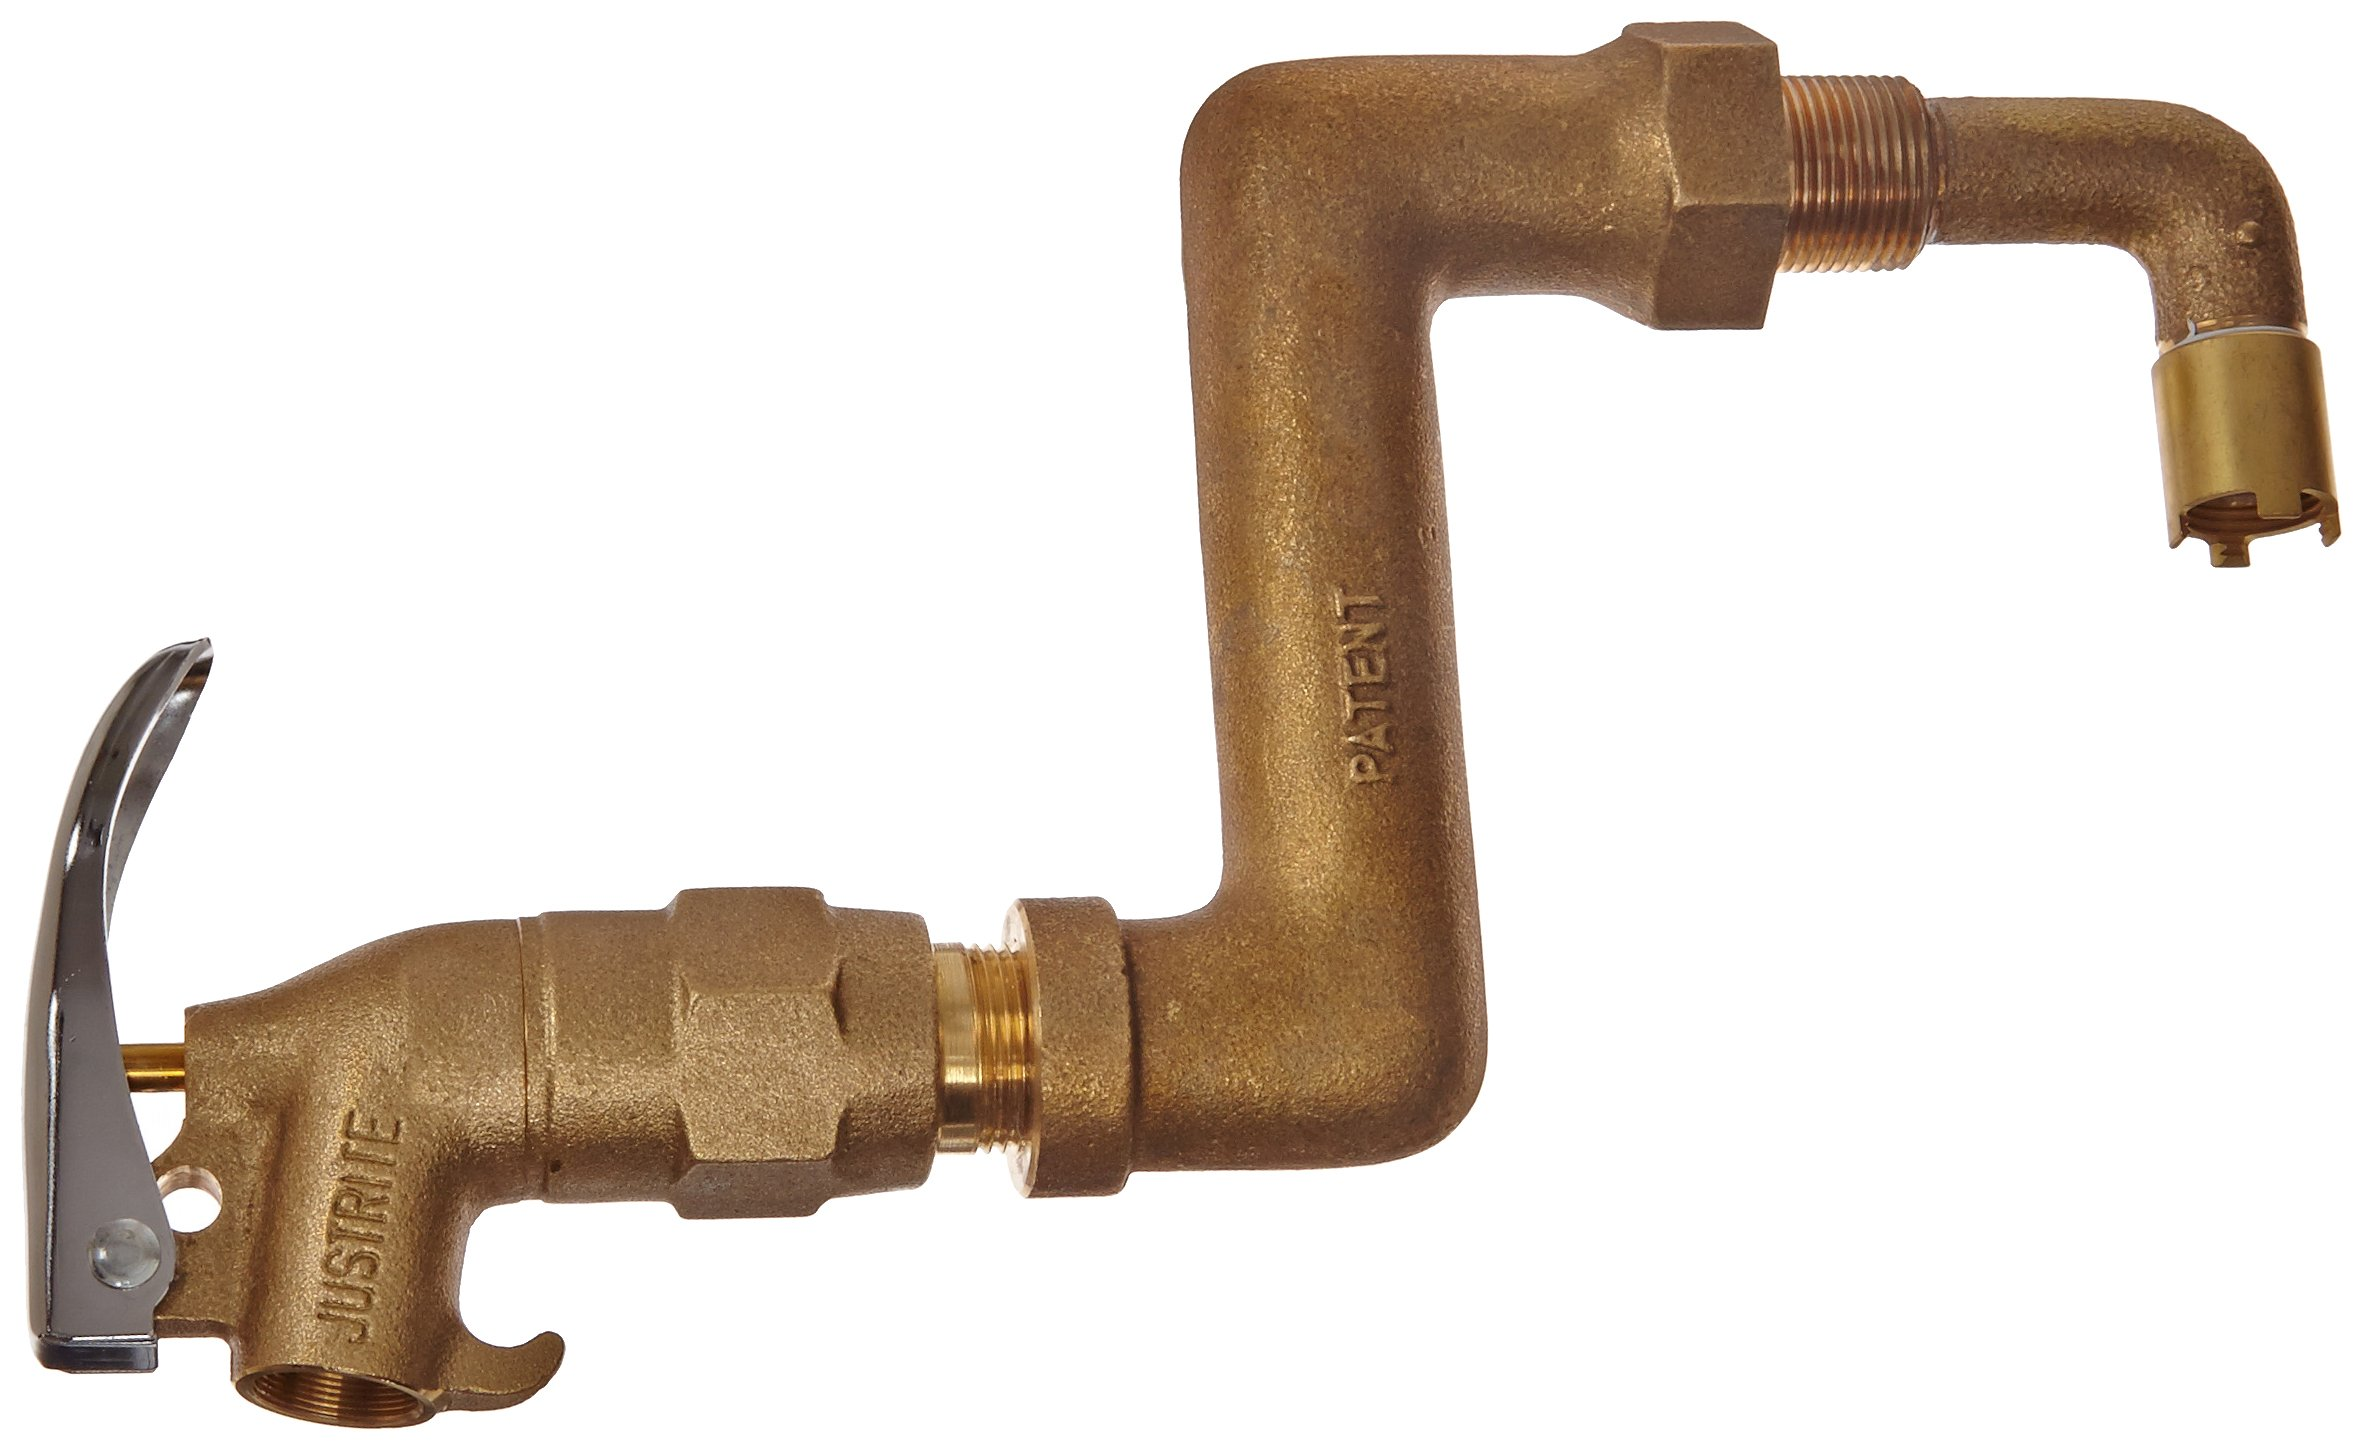 Justrite 08308 Brass Drum Siphon Adapter and Self Closing Faucet